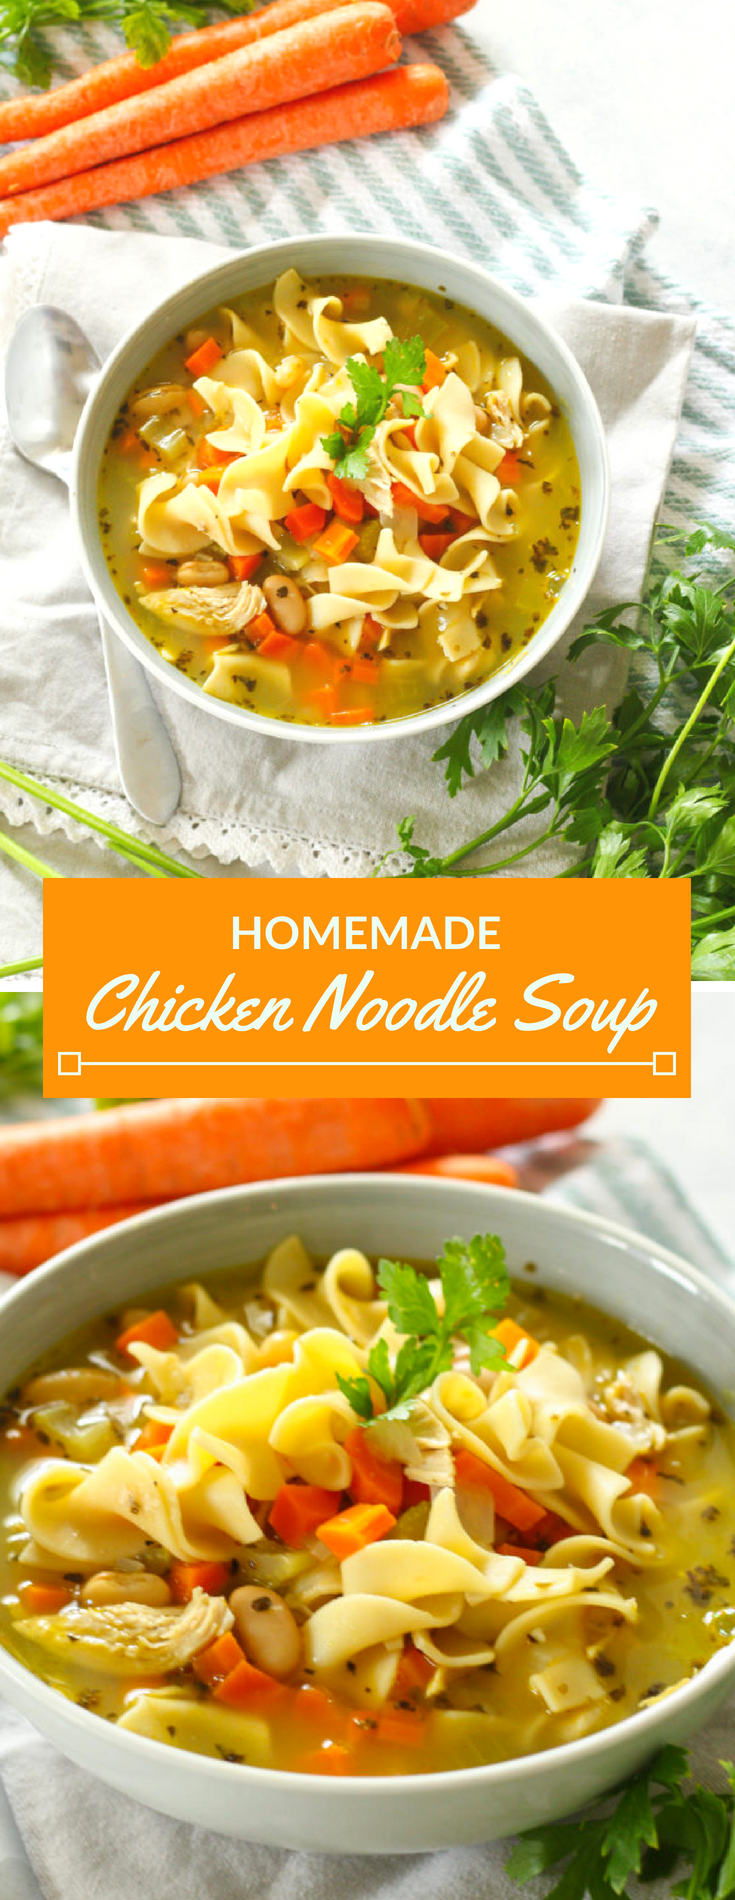 easy homemade chicken noodle soup  recipe with images